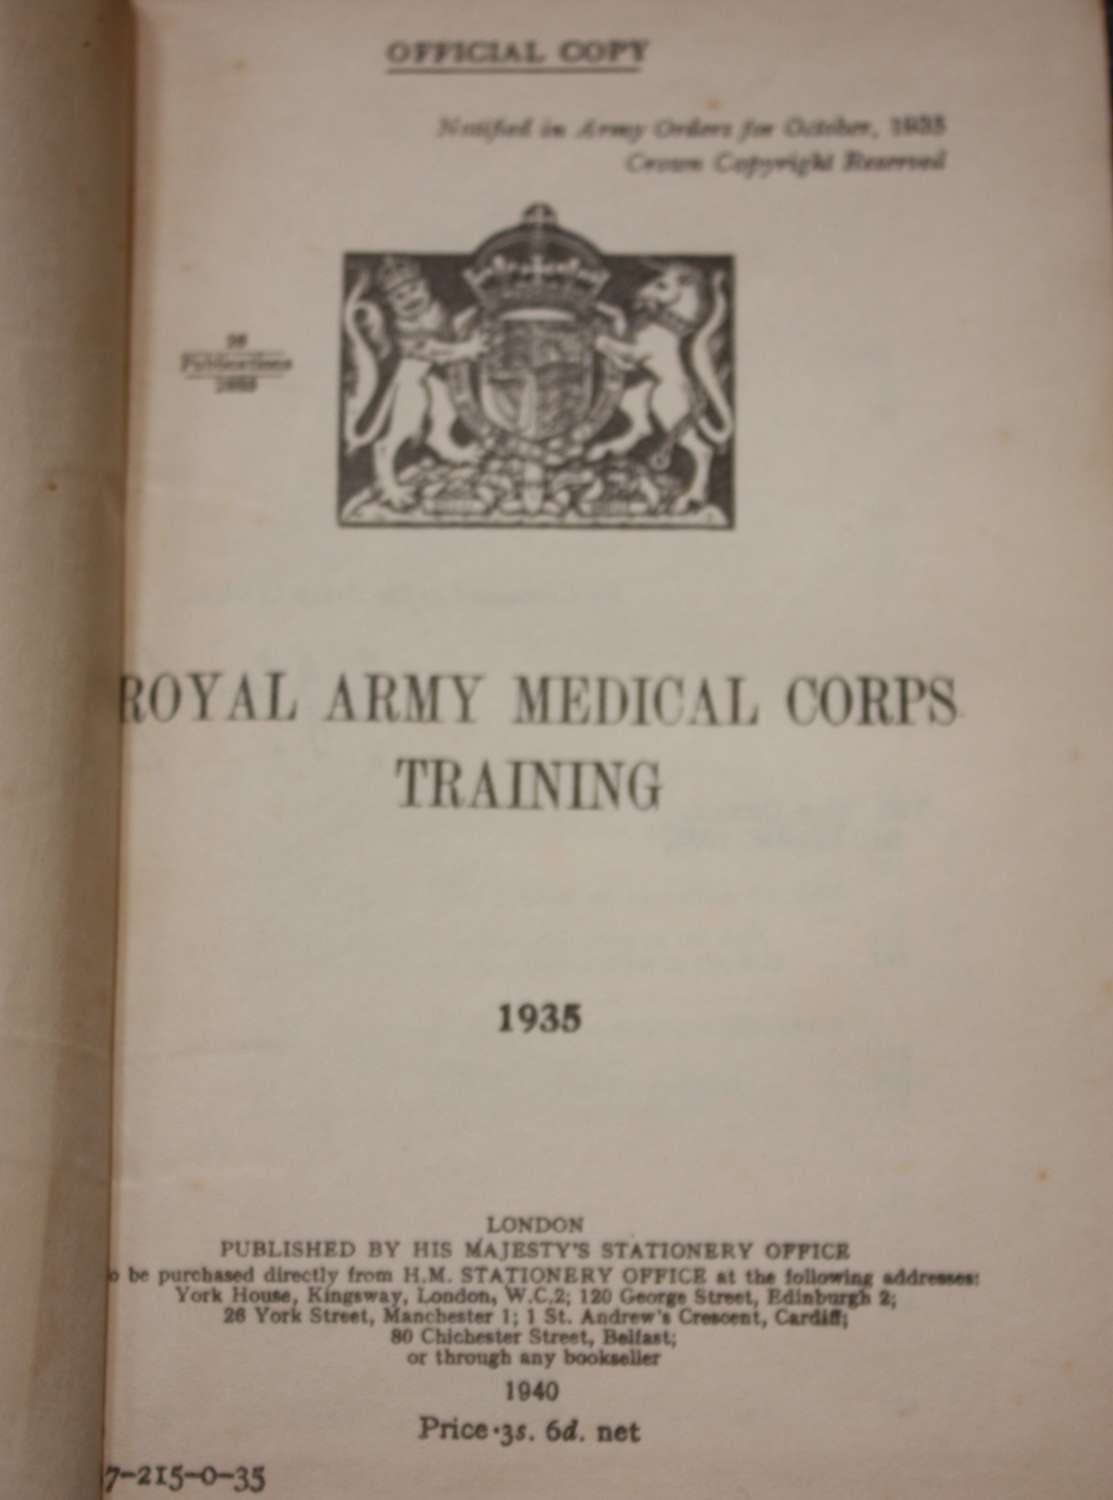 A 1940 DATED EDITION OF THE 1935 RAMC TRAINING MANUAL